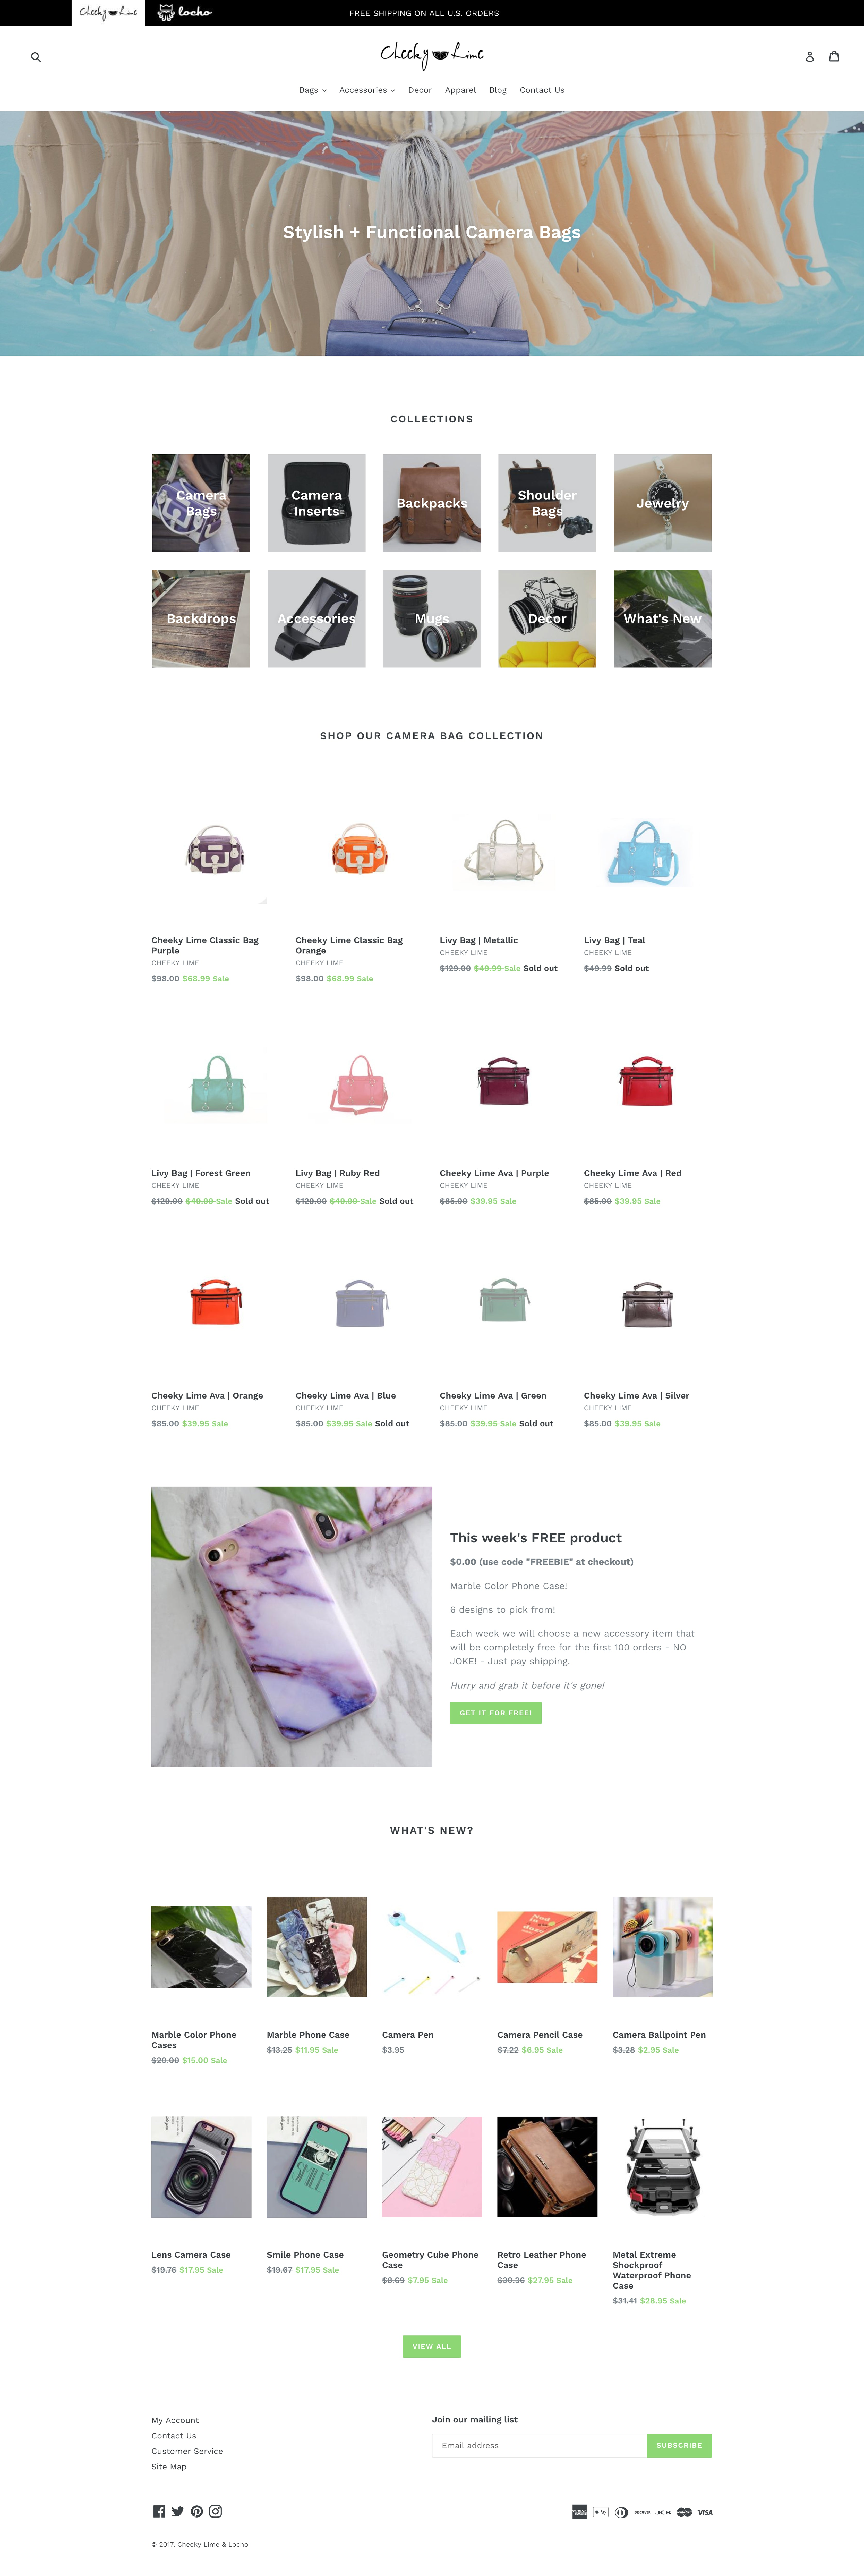 Cheeky Lime & Locho - Camera Bags & Accessories Screenshot - 1